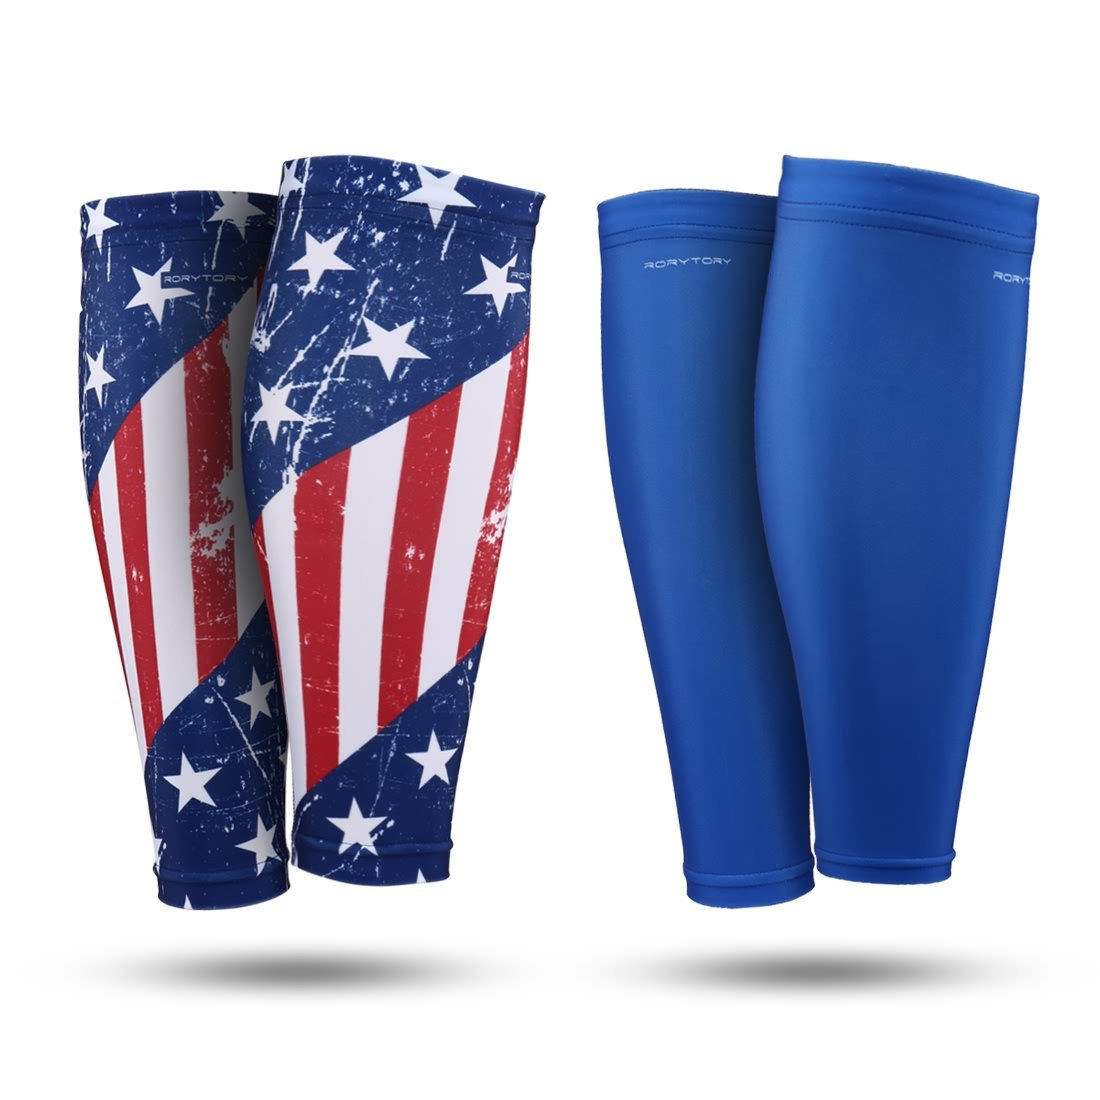 RoryTory Calf Compression Sleeves - Sports & Medical Recovery Shin Splints Leg Pain Relief Support Circulation Cramping Sore Muscles - 2 Pairs of Adult Size XL/XXL USA American Flag Patriotic Design